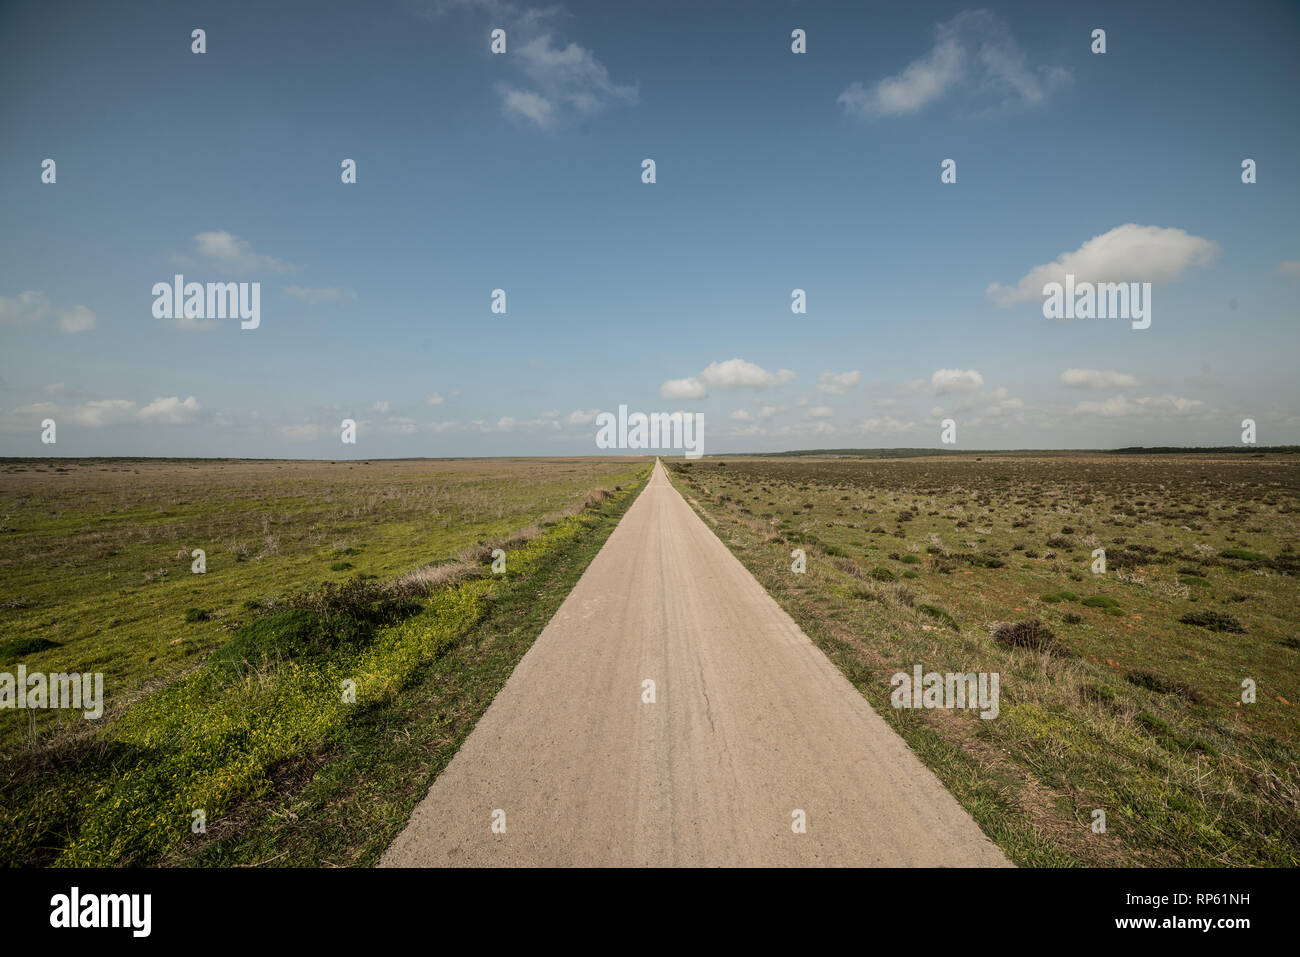 Country road, Sagres, Algarve, Portugal, February 2019 - Stock Image